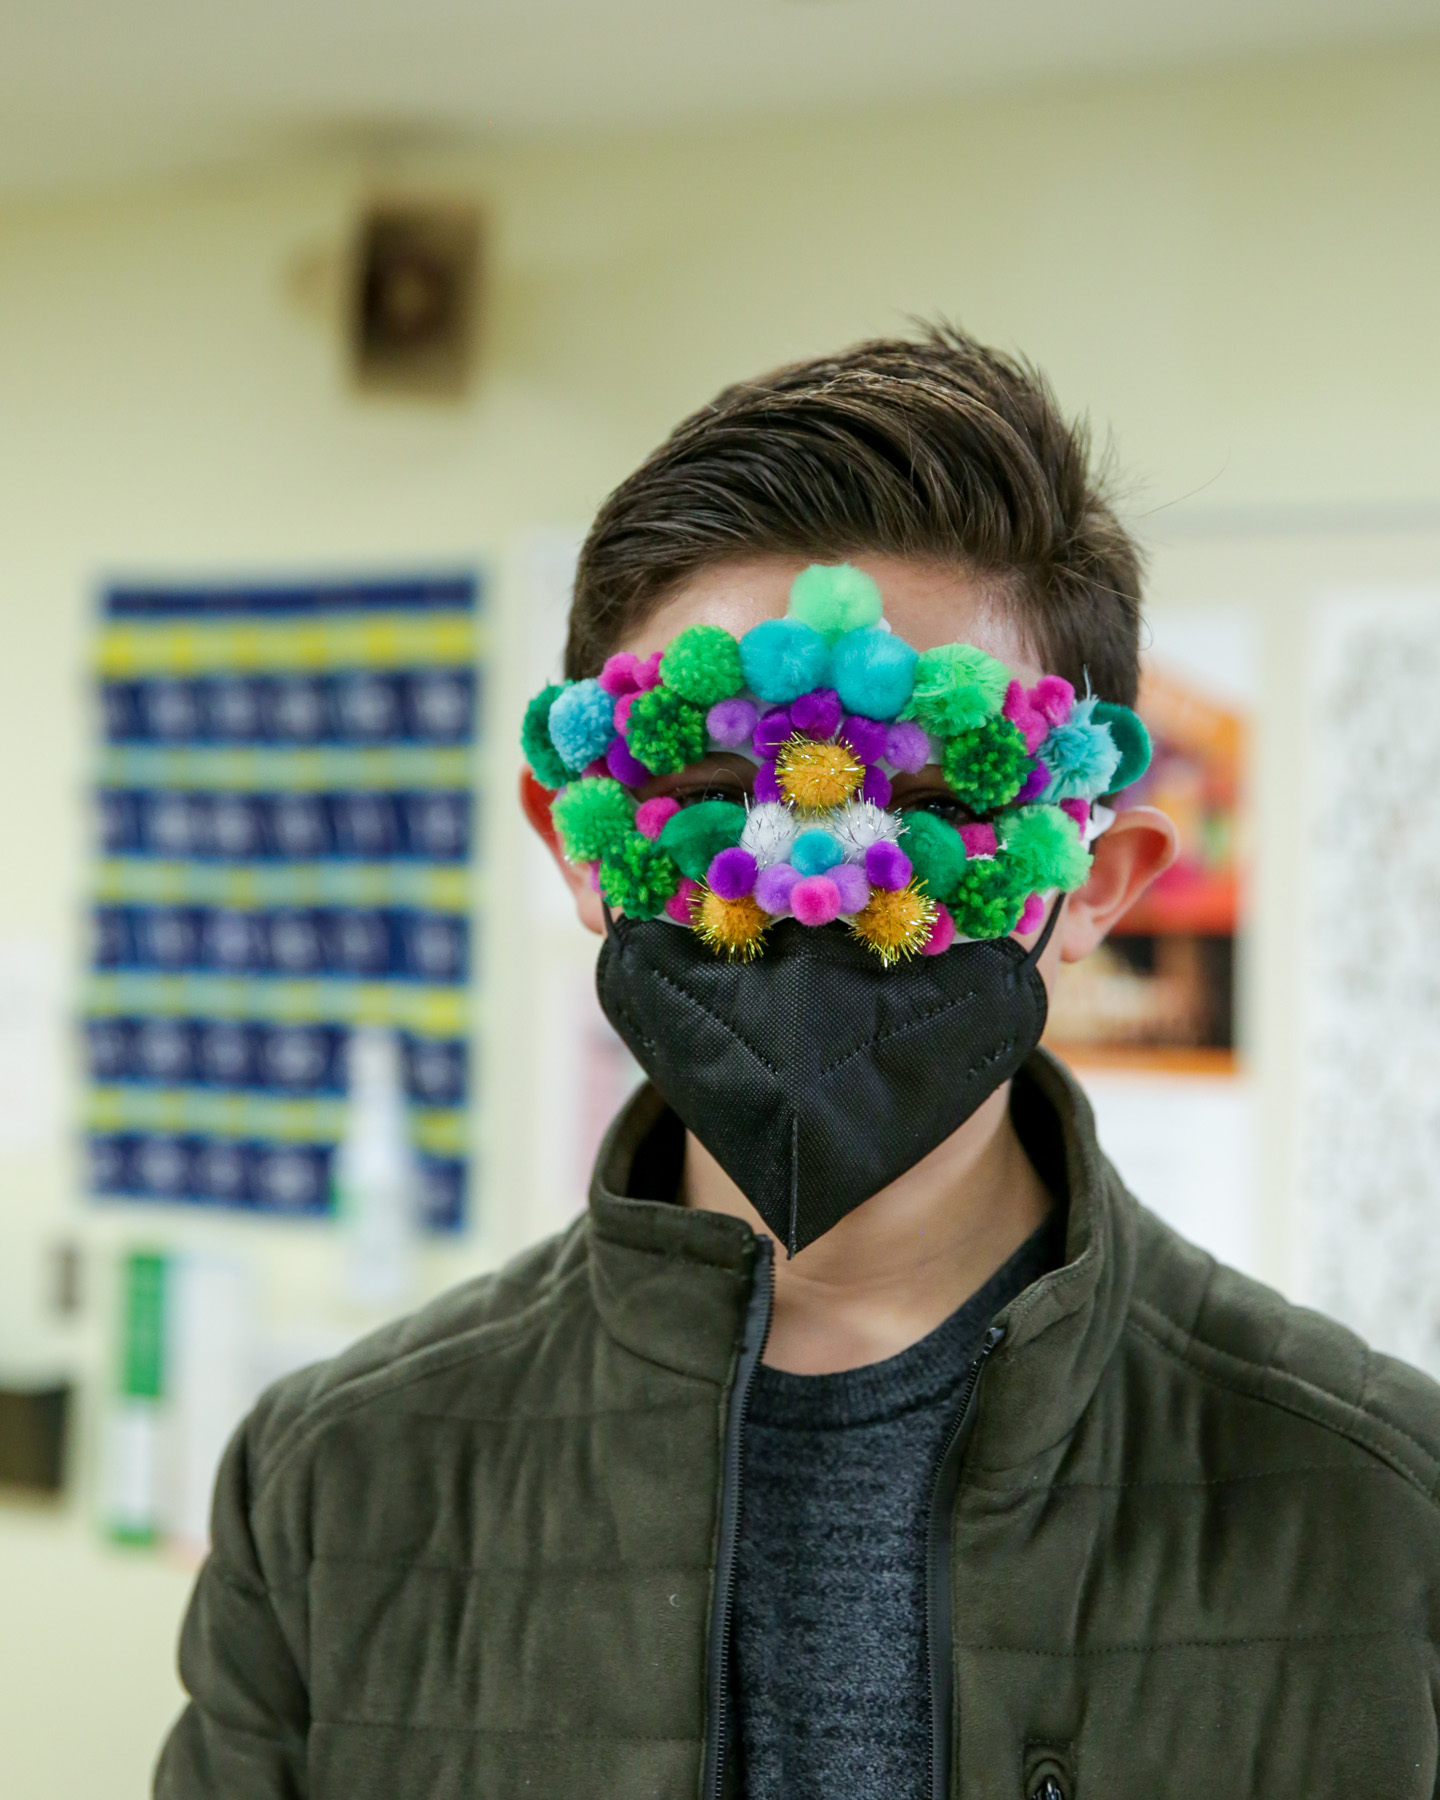 Student Wearing Mardi Gras Mask with Pom Poms